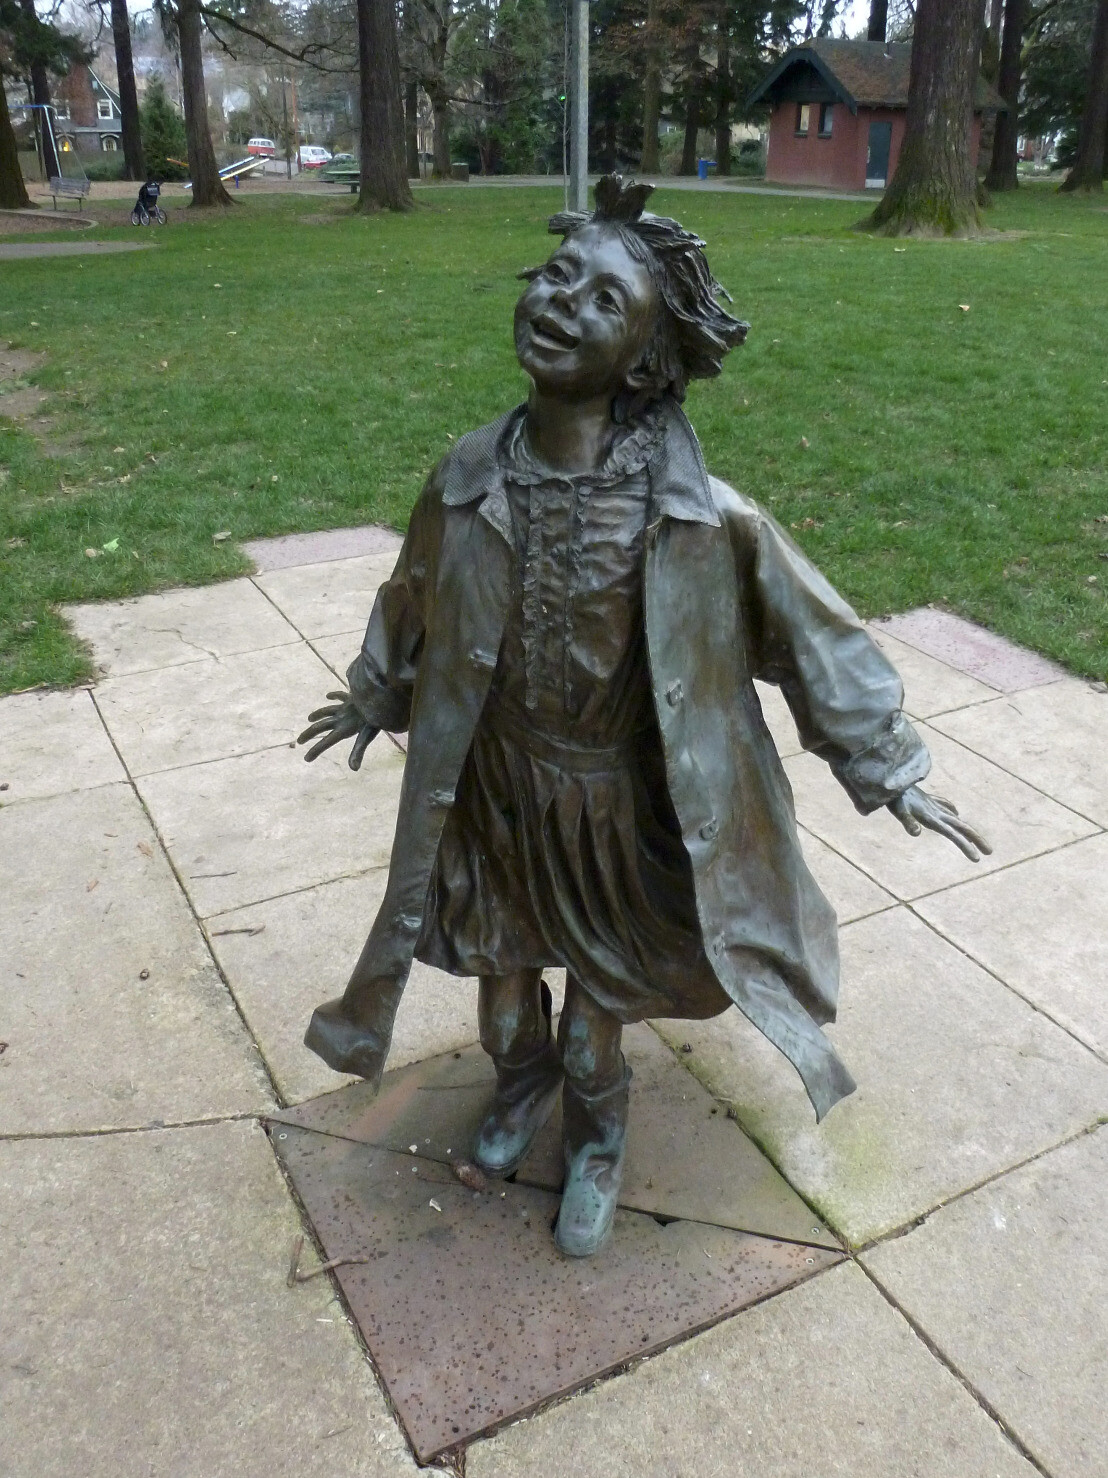 Statue of Ramona Quimby, one of several inspired by Beverly Cleary characters in Grant Park ...